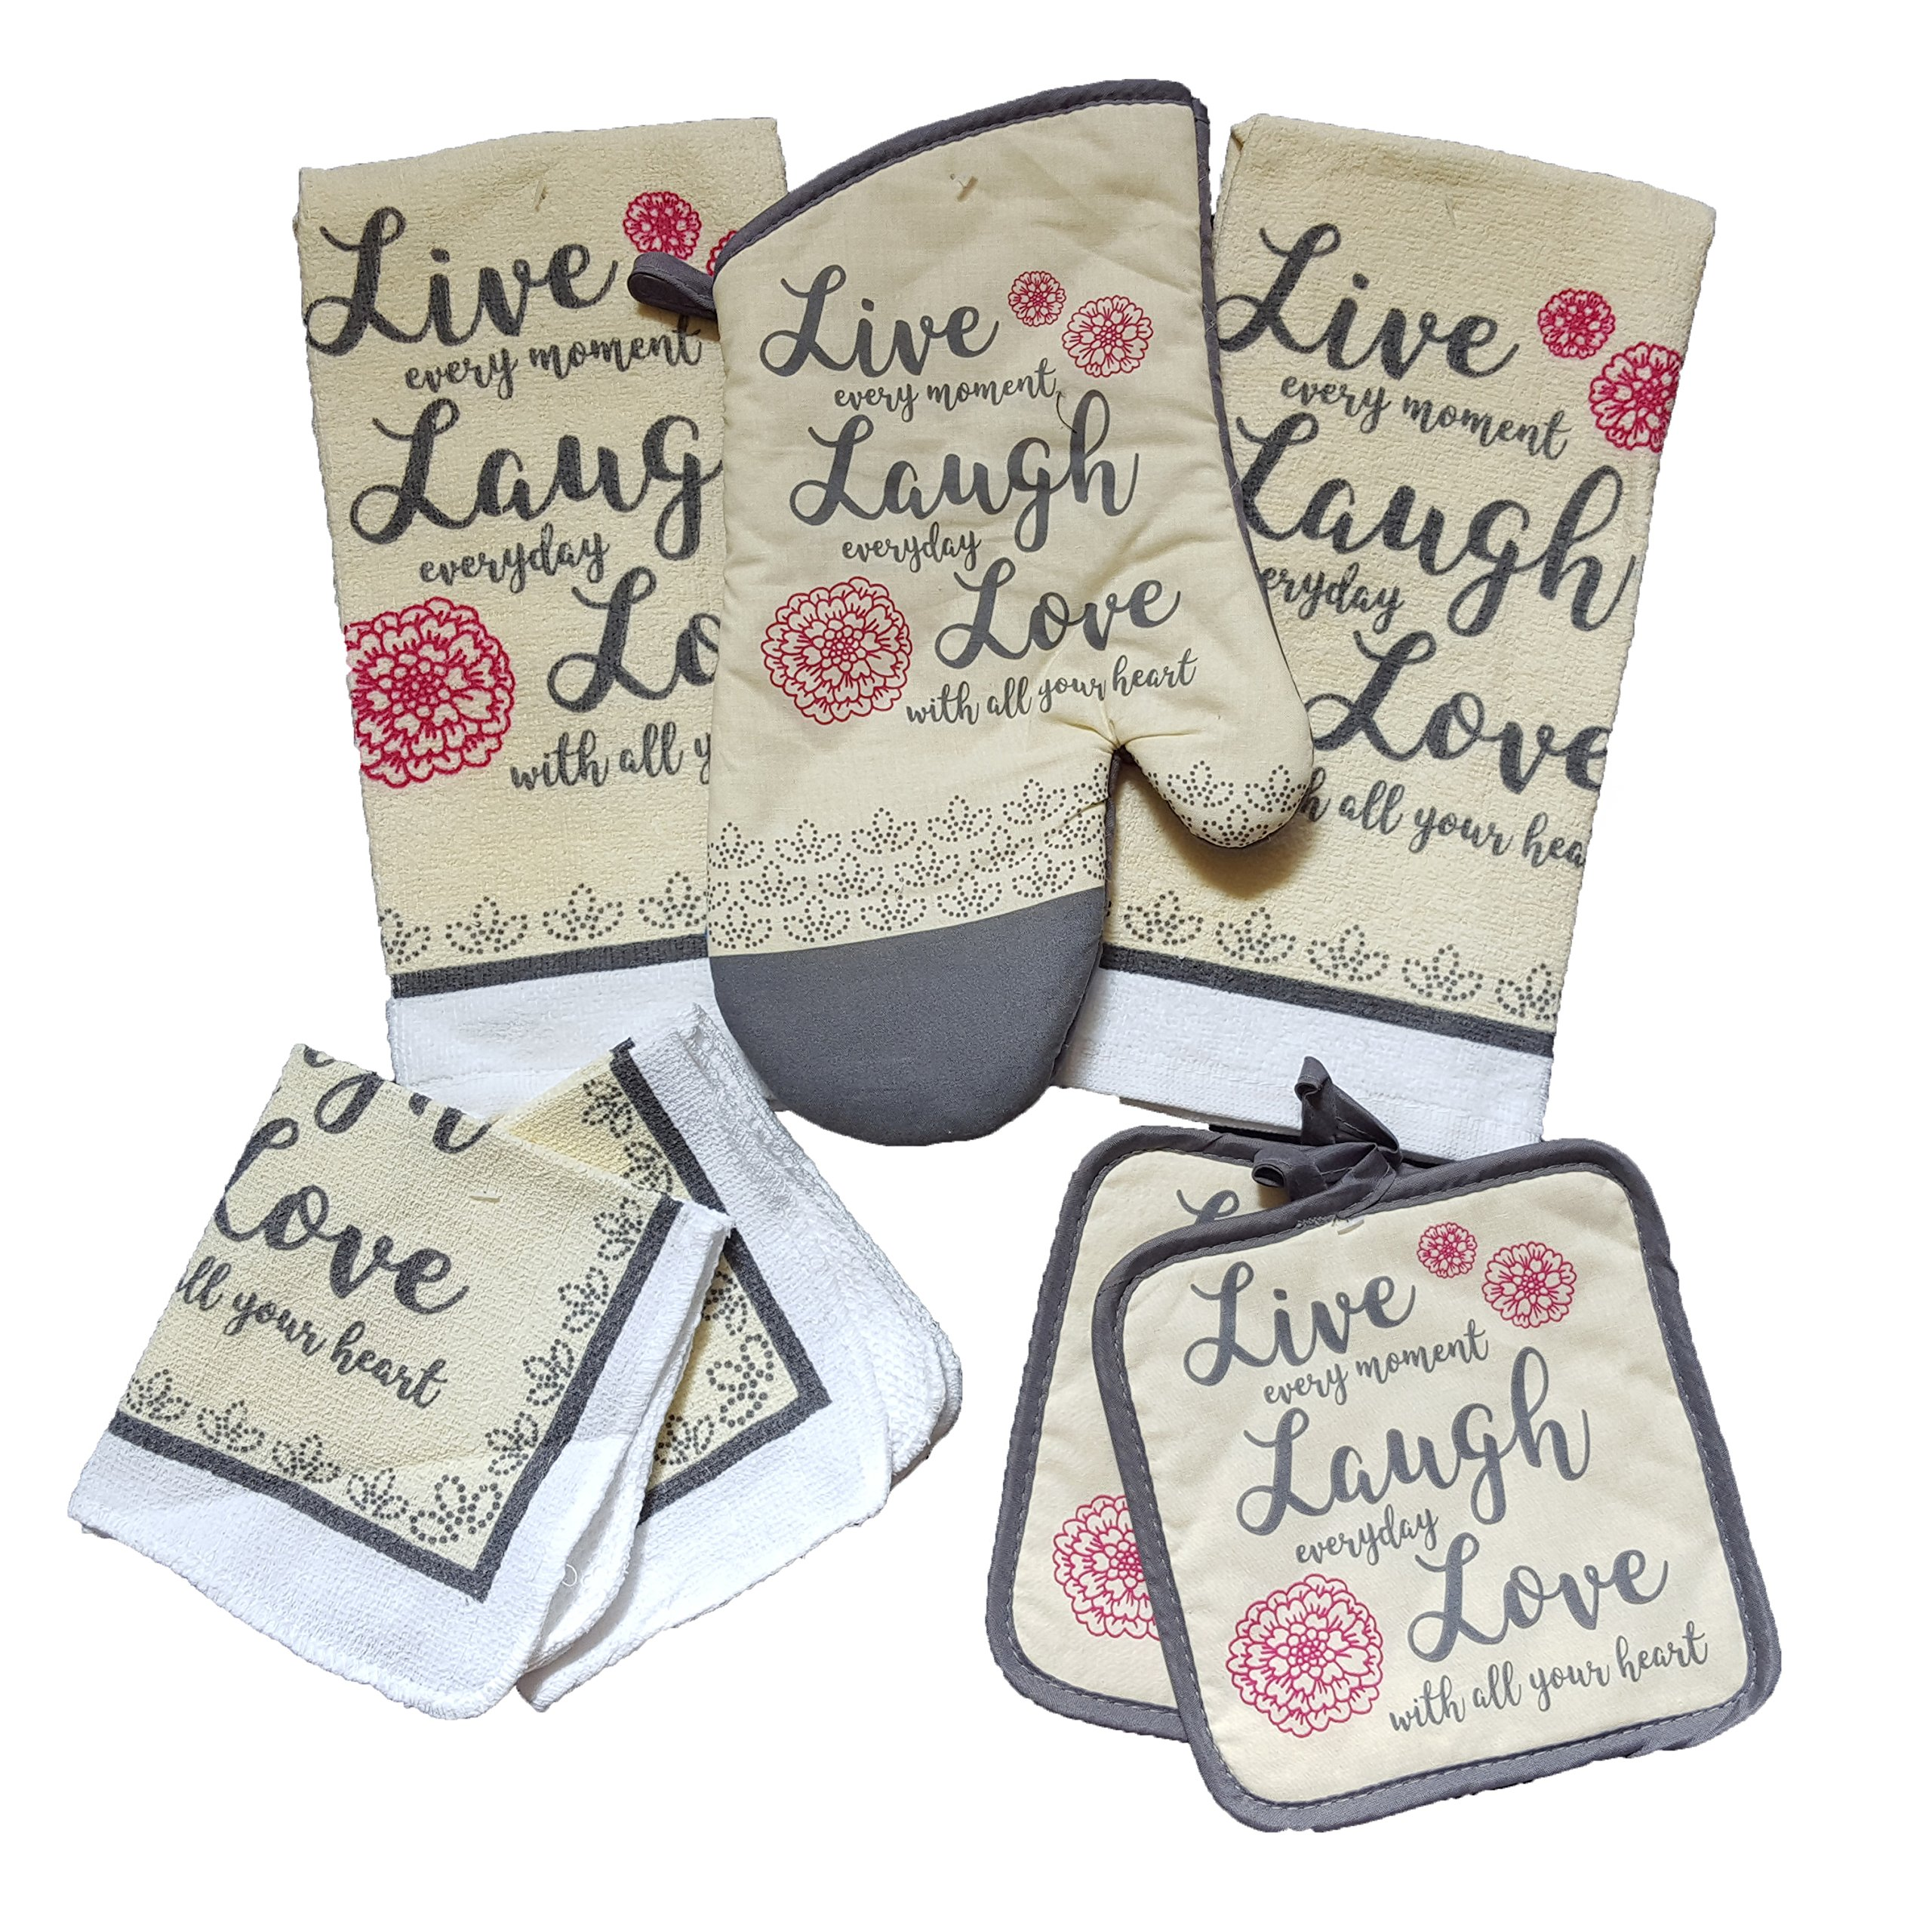 Inspirational Sentiment Kitchen Linen 7 Piece Bundle - With 2 Dish Towels, 2 Dishcloths, 2 Potholders, and 1 Oven Mitt (Live Laugh Love)